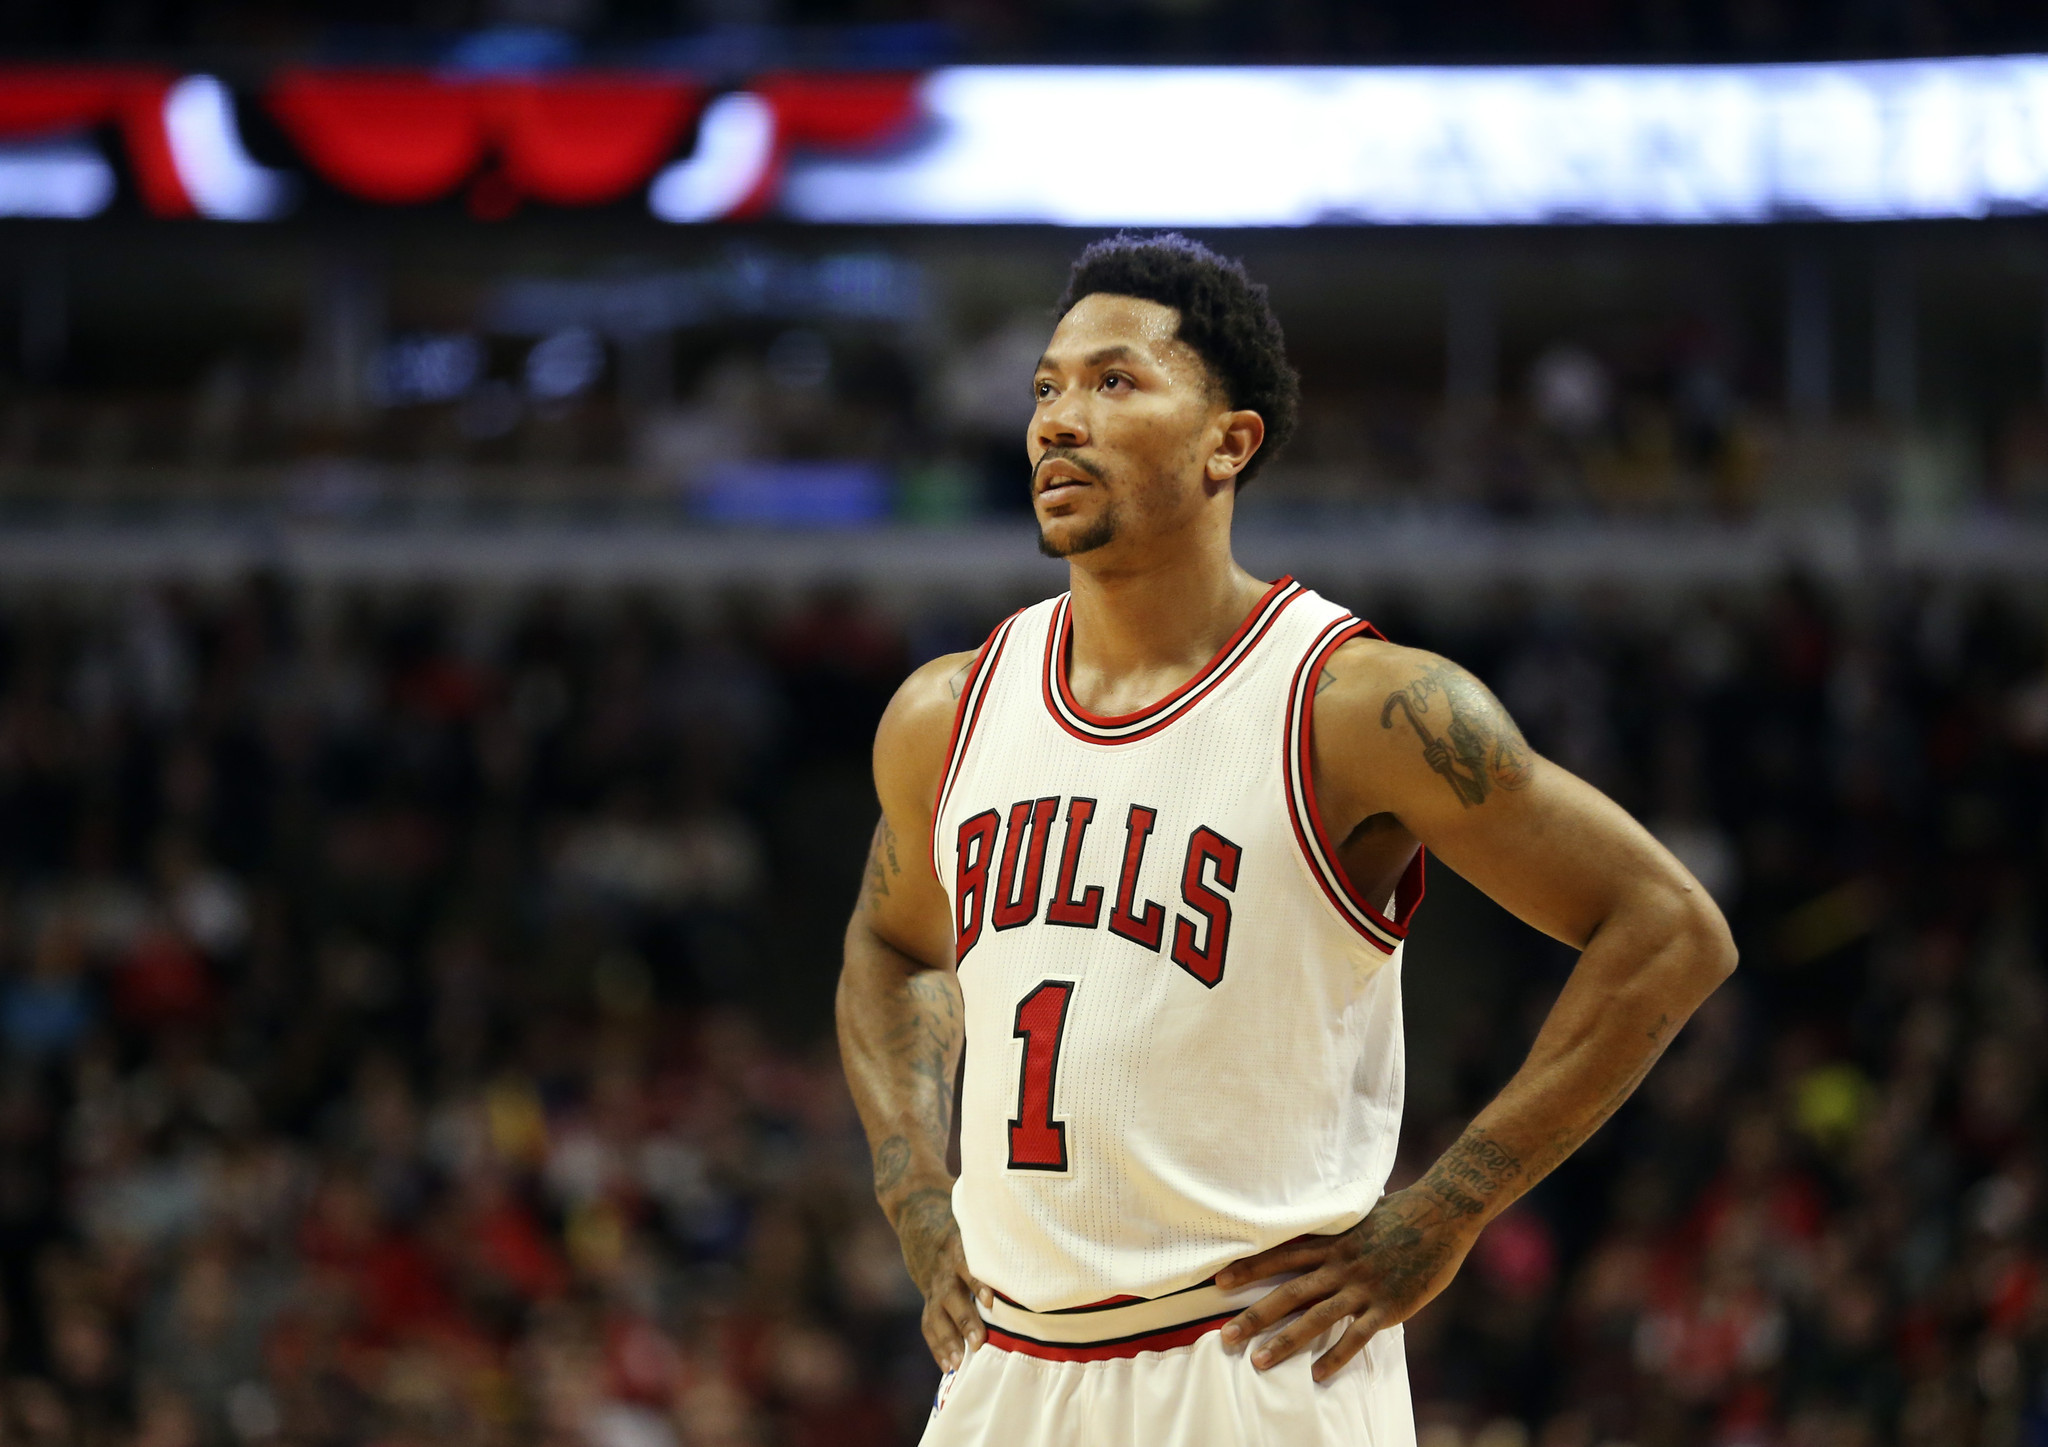 c2582c380947 Bulls  Derrick Rose confident of return down the stretch - Chicago ...